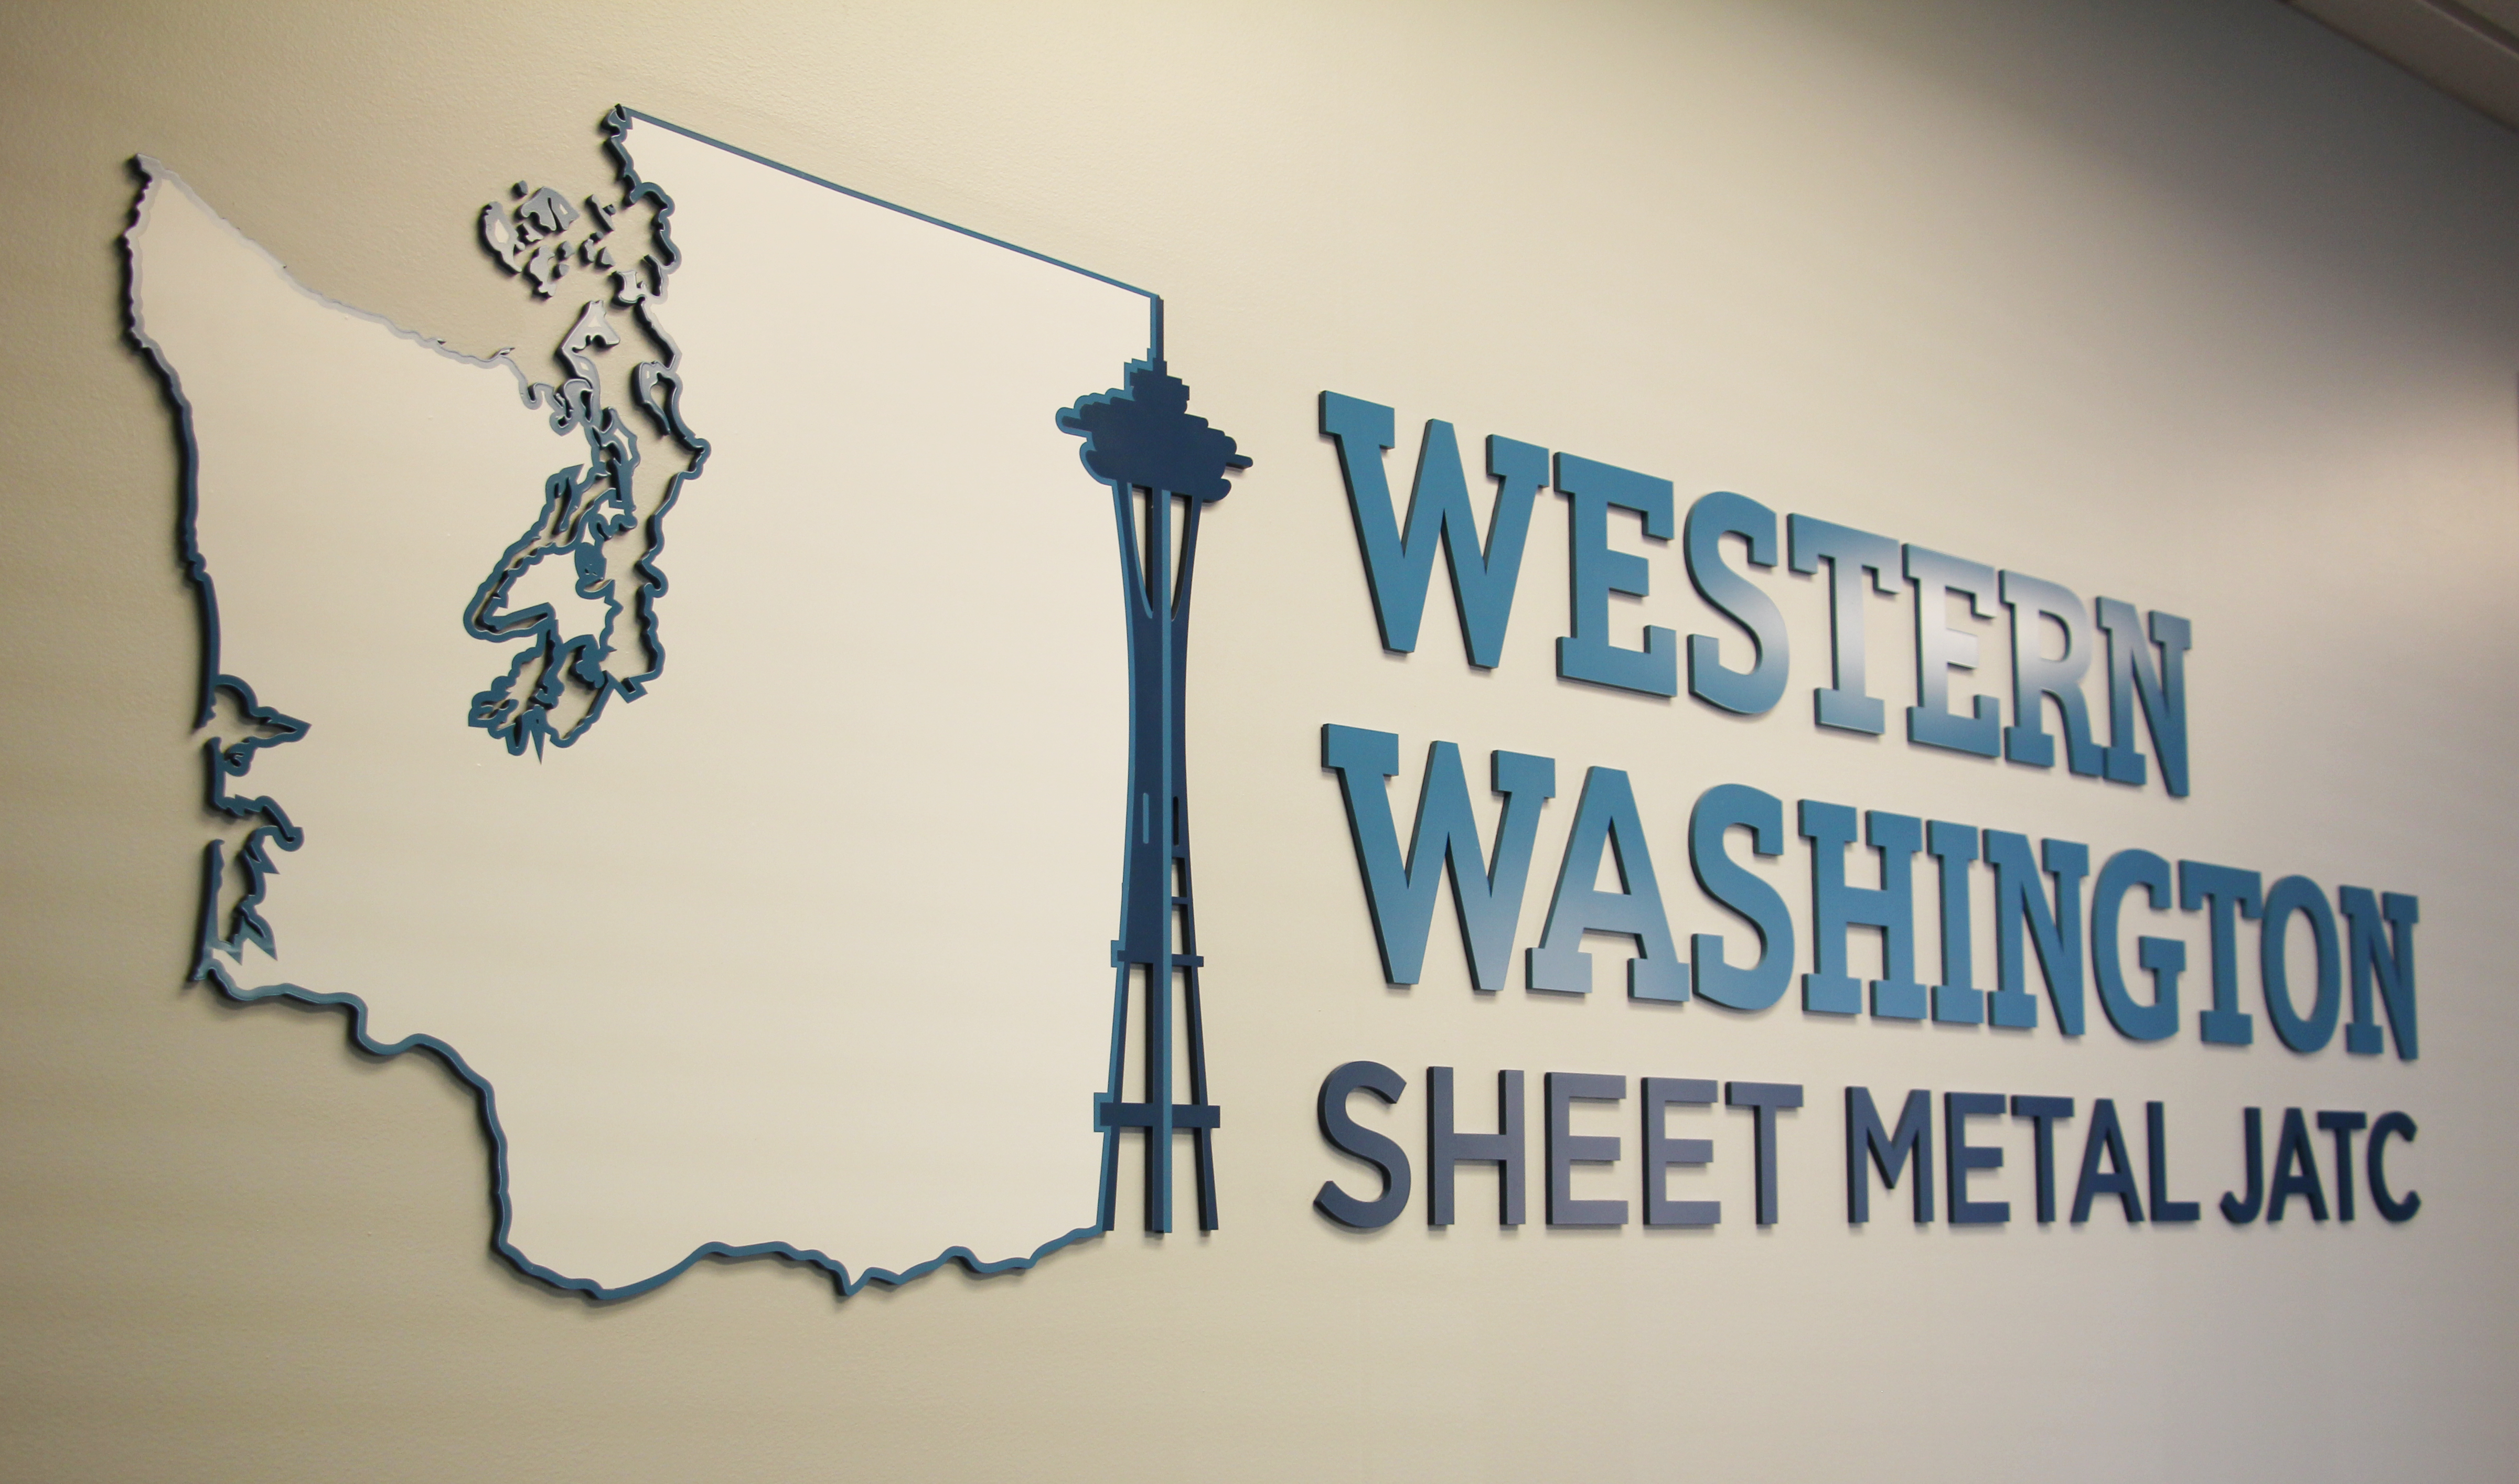 Western Washington Sheet Metal JATC